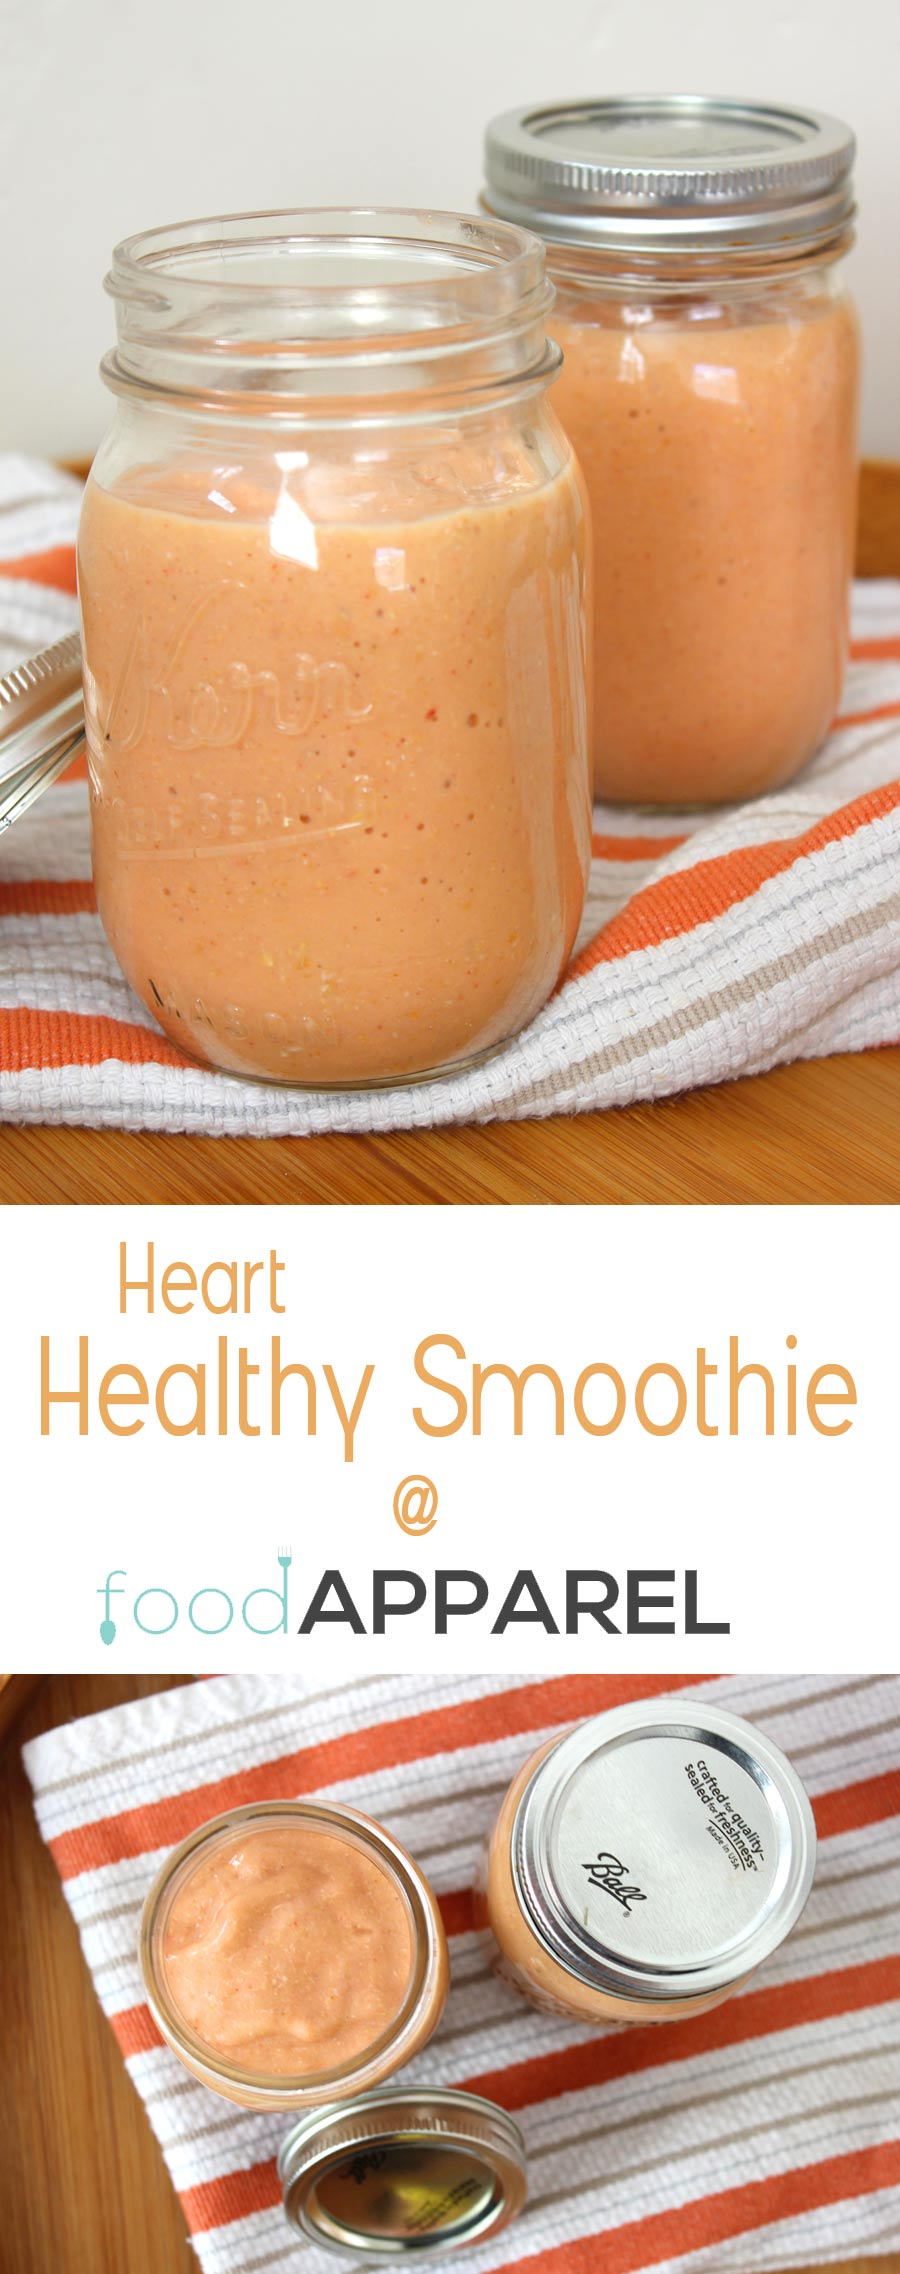 Heart Healthy Smoothie Recipe - great way to start the day! @foodapparel